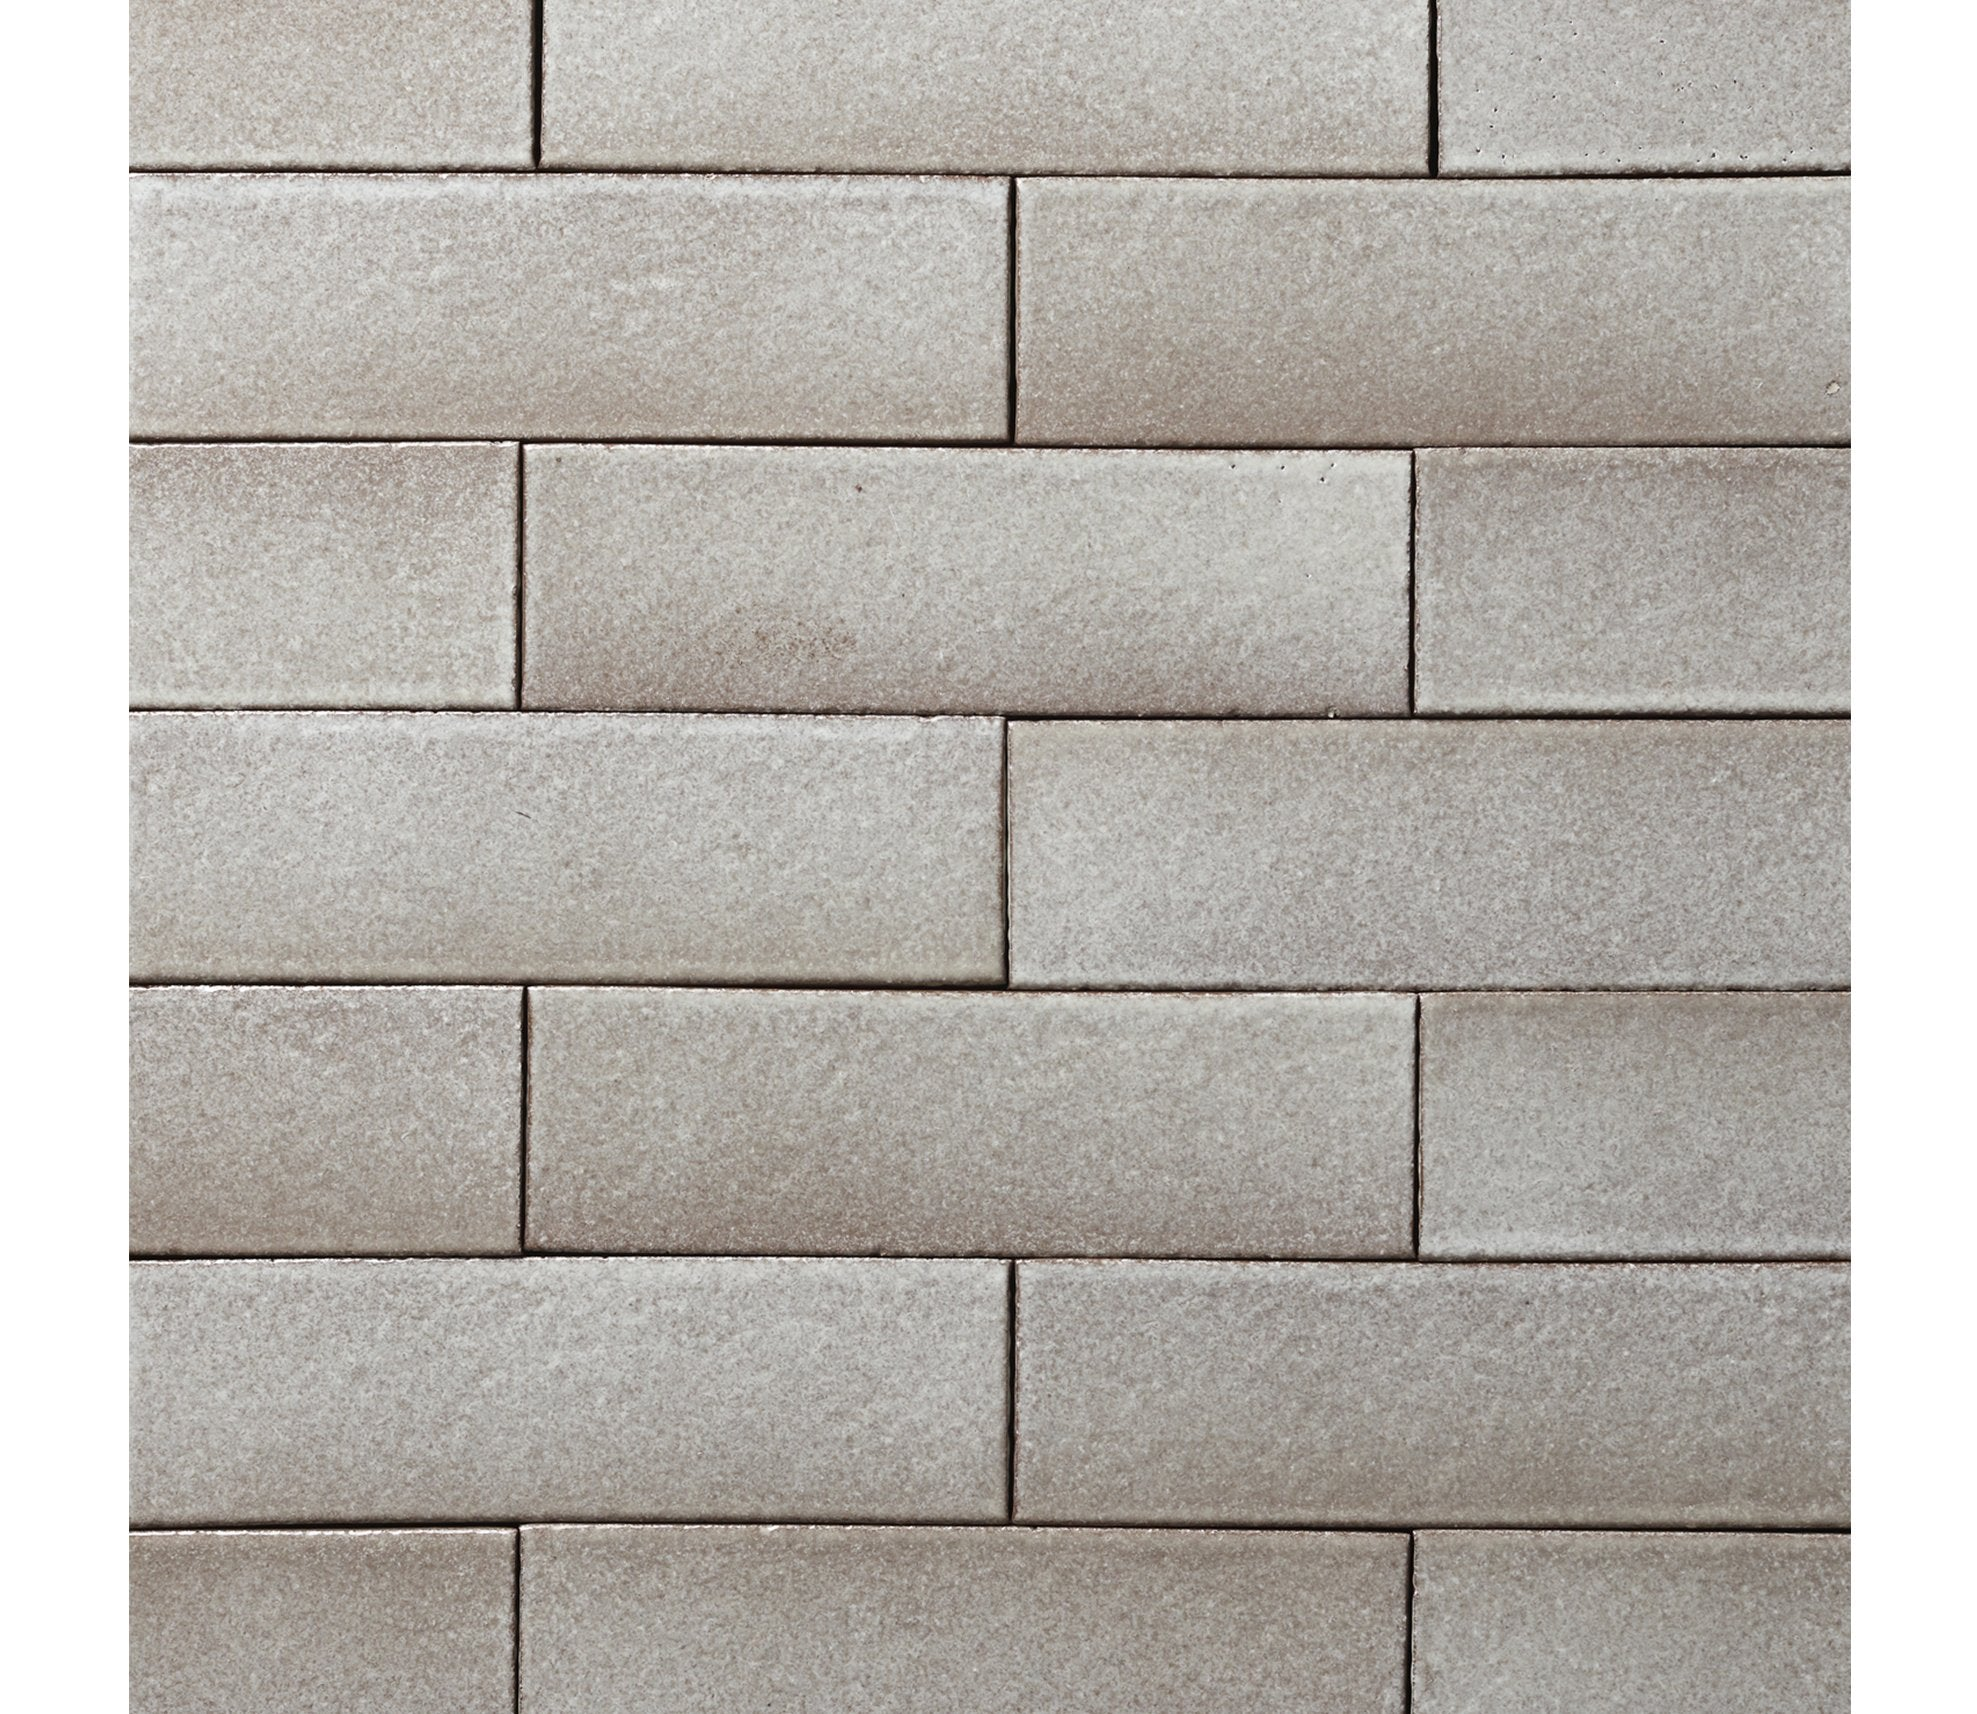 Terra Firma Glazed Bricks Product Image 38